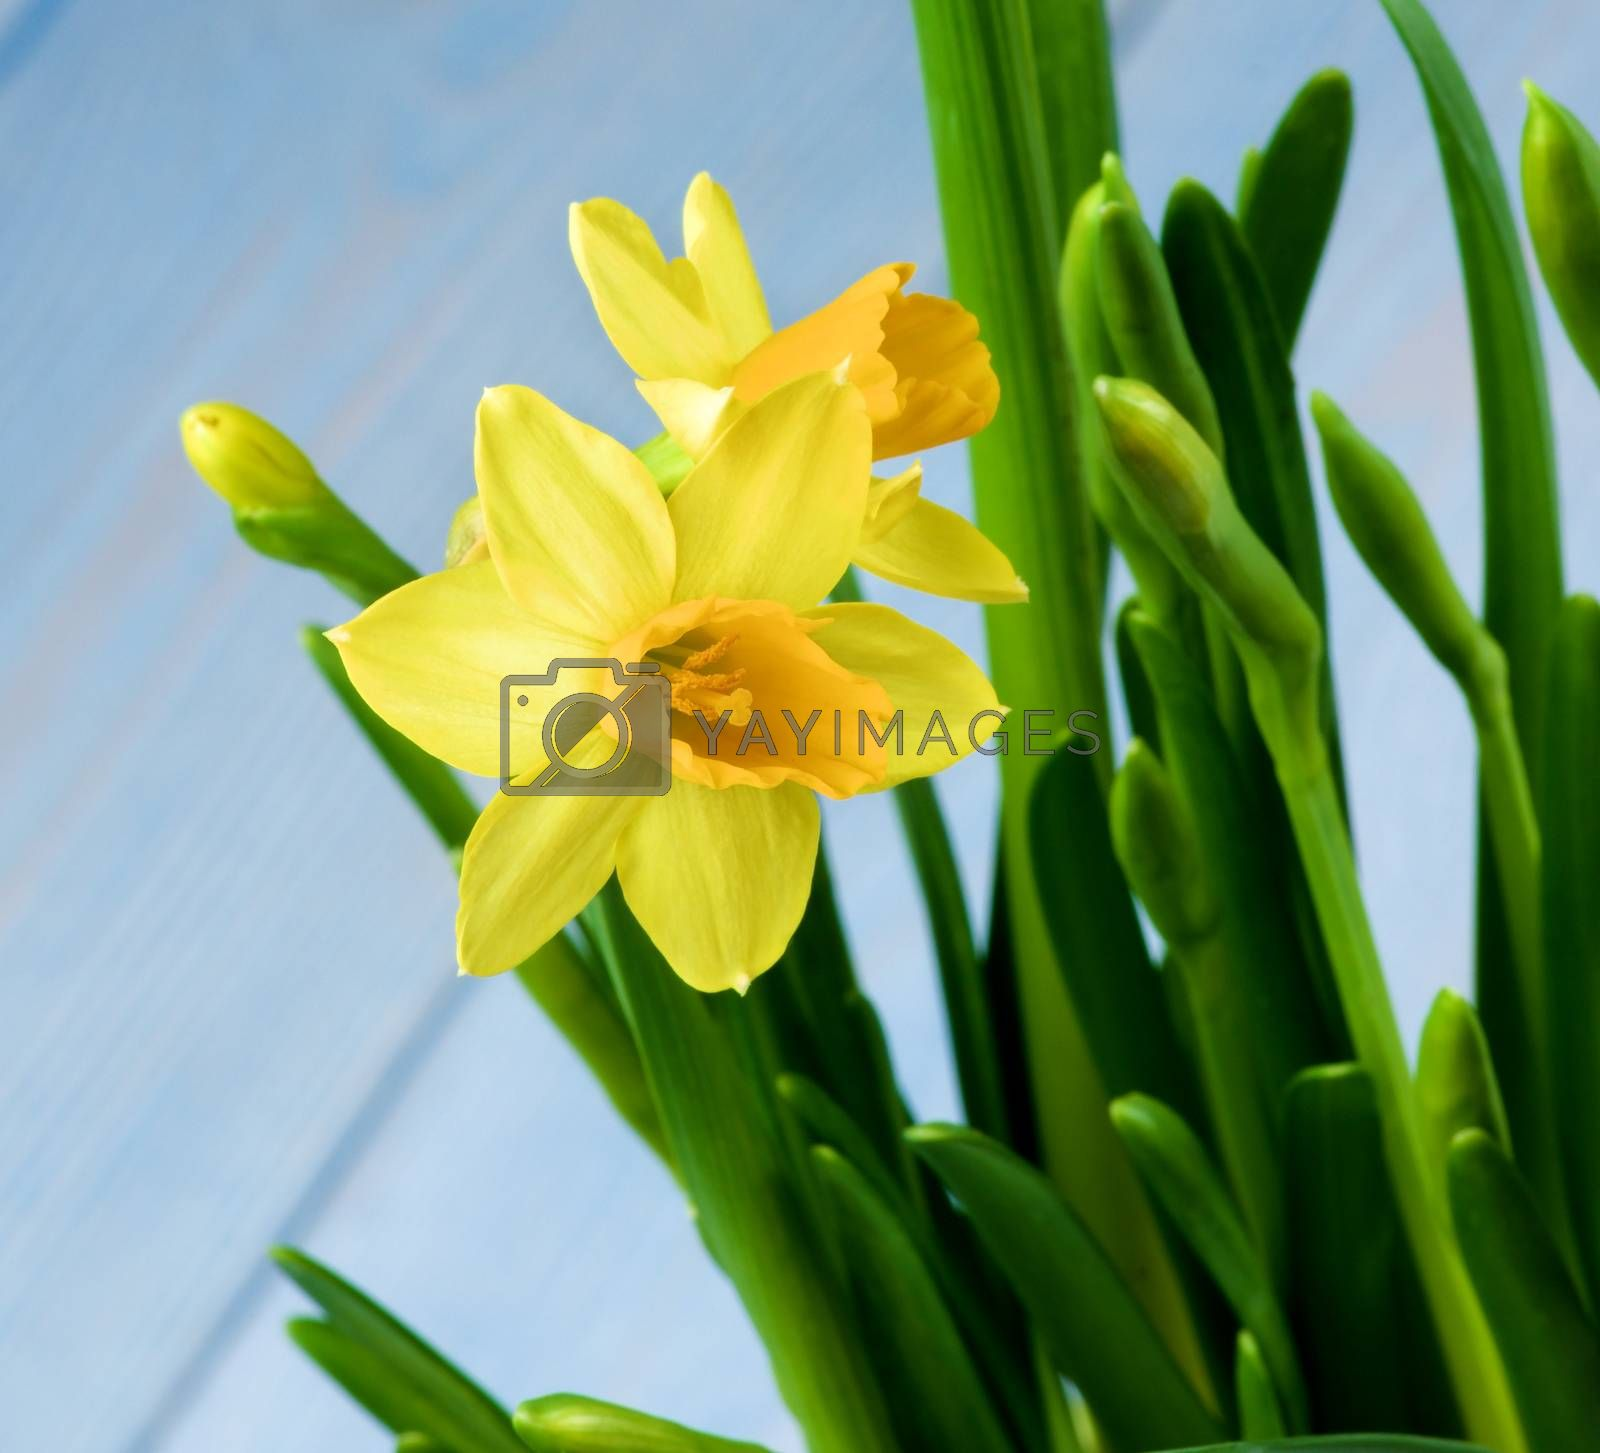 Two Wild Yellow Daffodils and Buds closeup on Blurred Blue background. Focus on Foreground